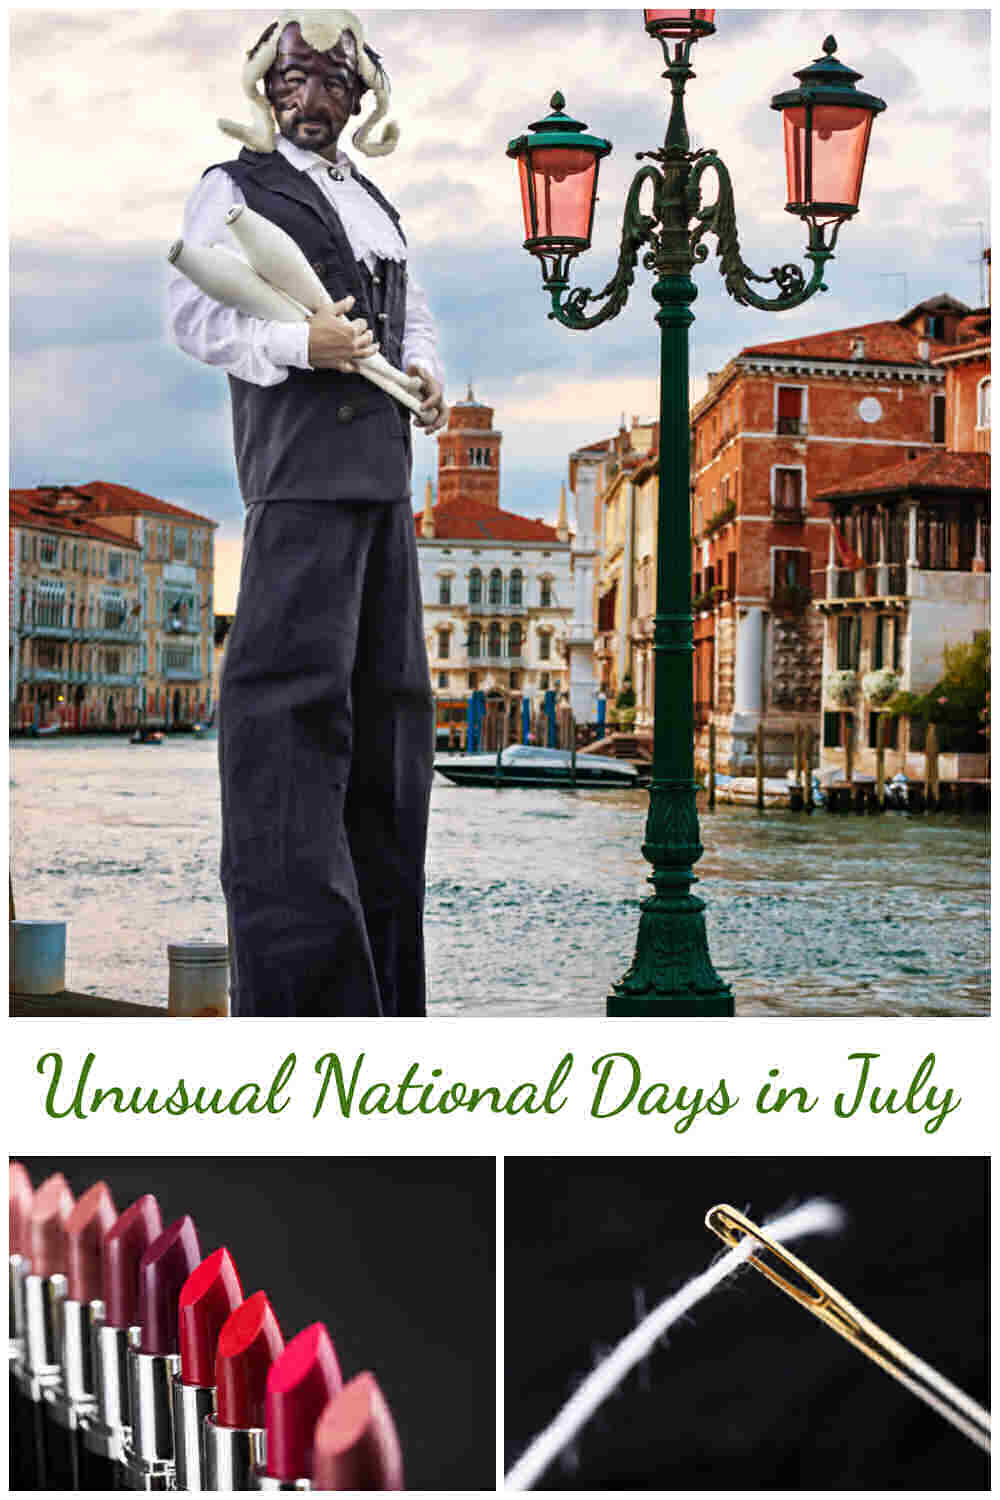 Man on stilts, tubes of lipstick and threading a needle with words unusual national days in July